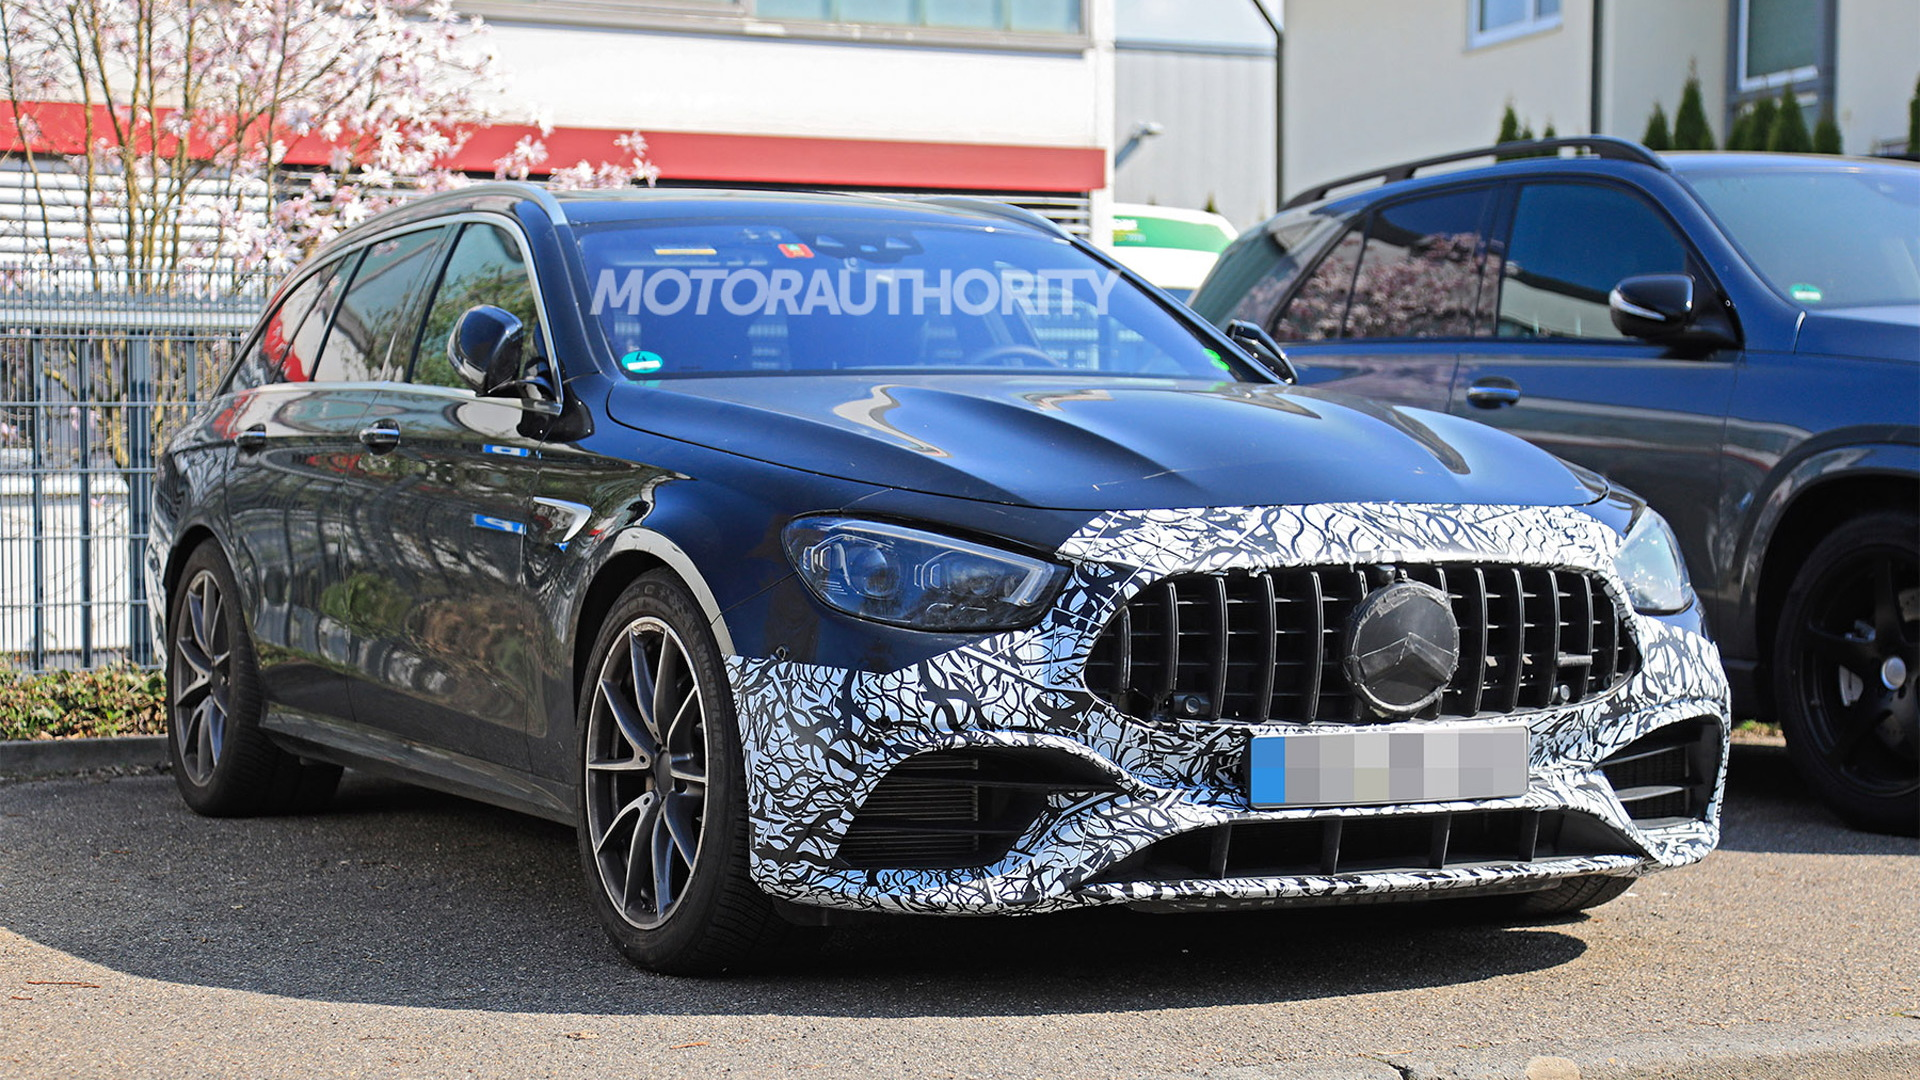 2021 Mercedes-AMG E63 Wagon spy shots - Photo credit: S. Baldauf/SB-Medien